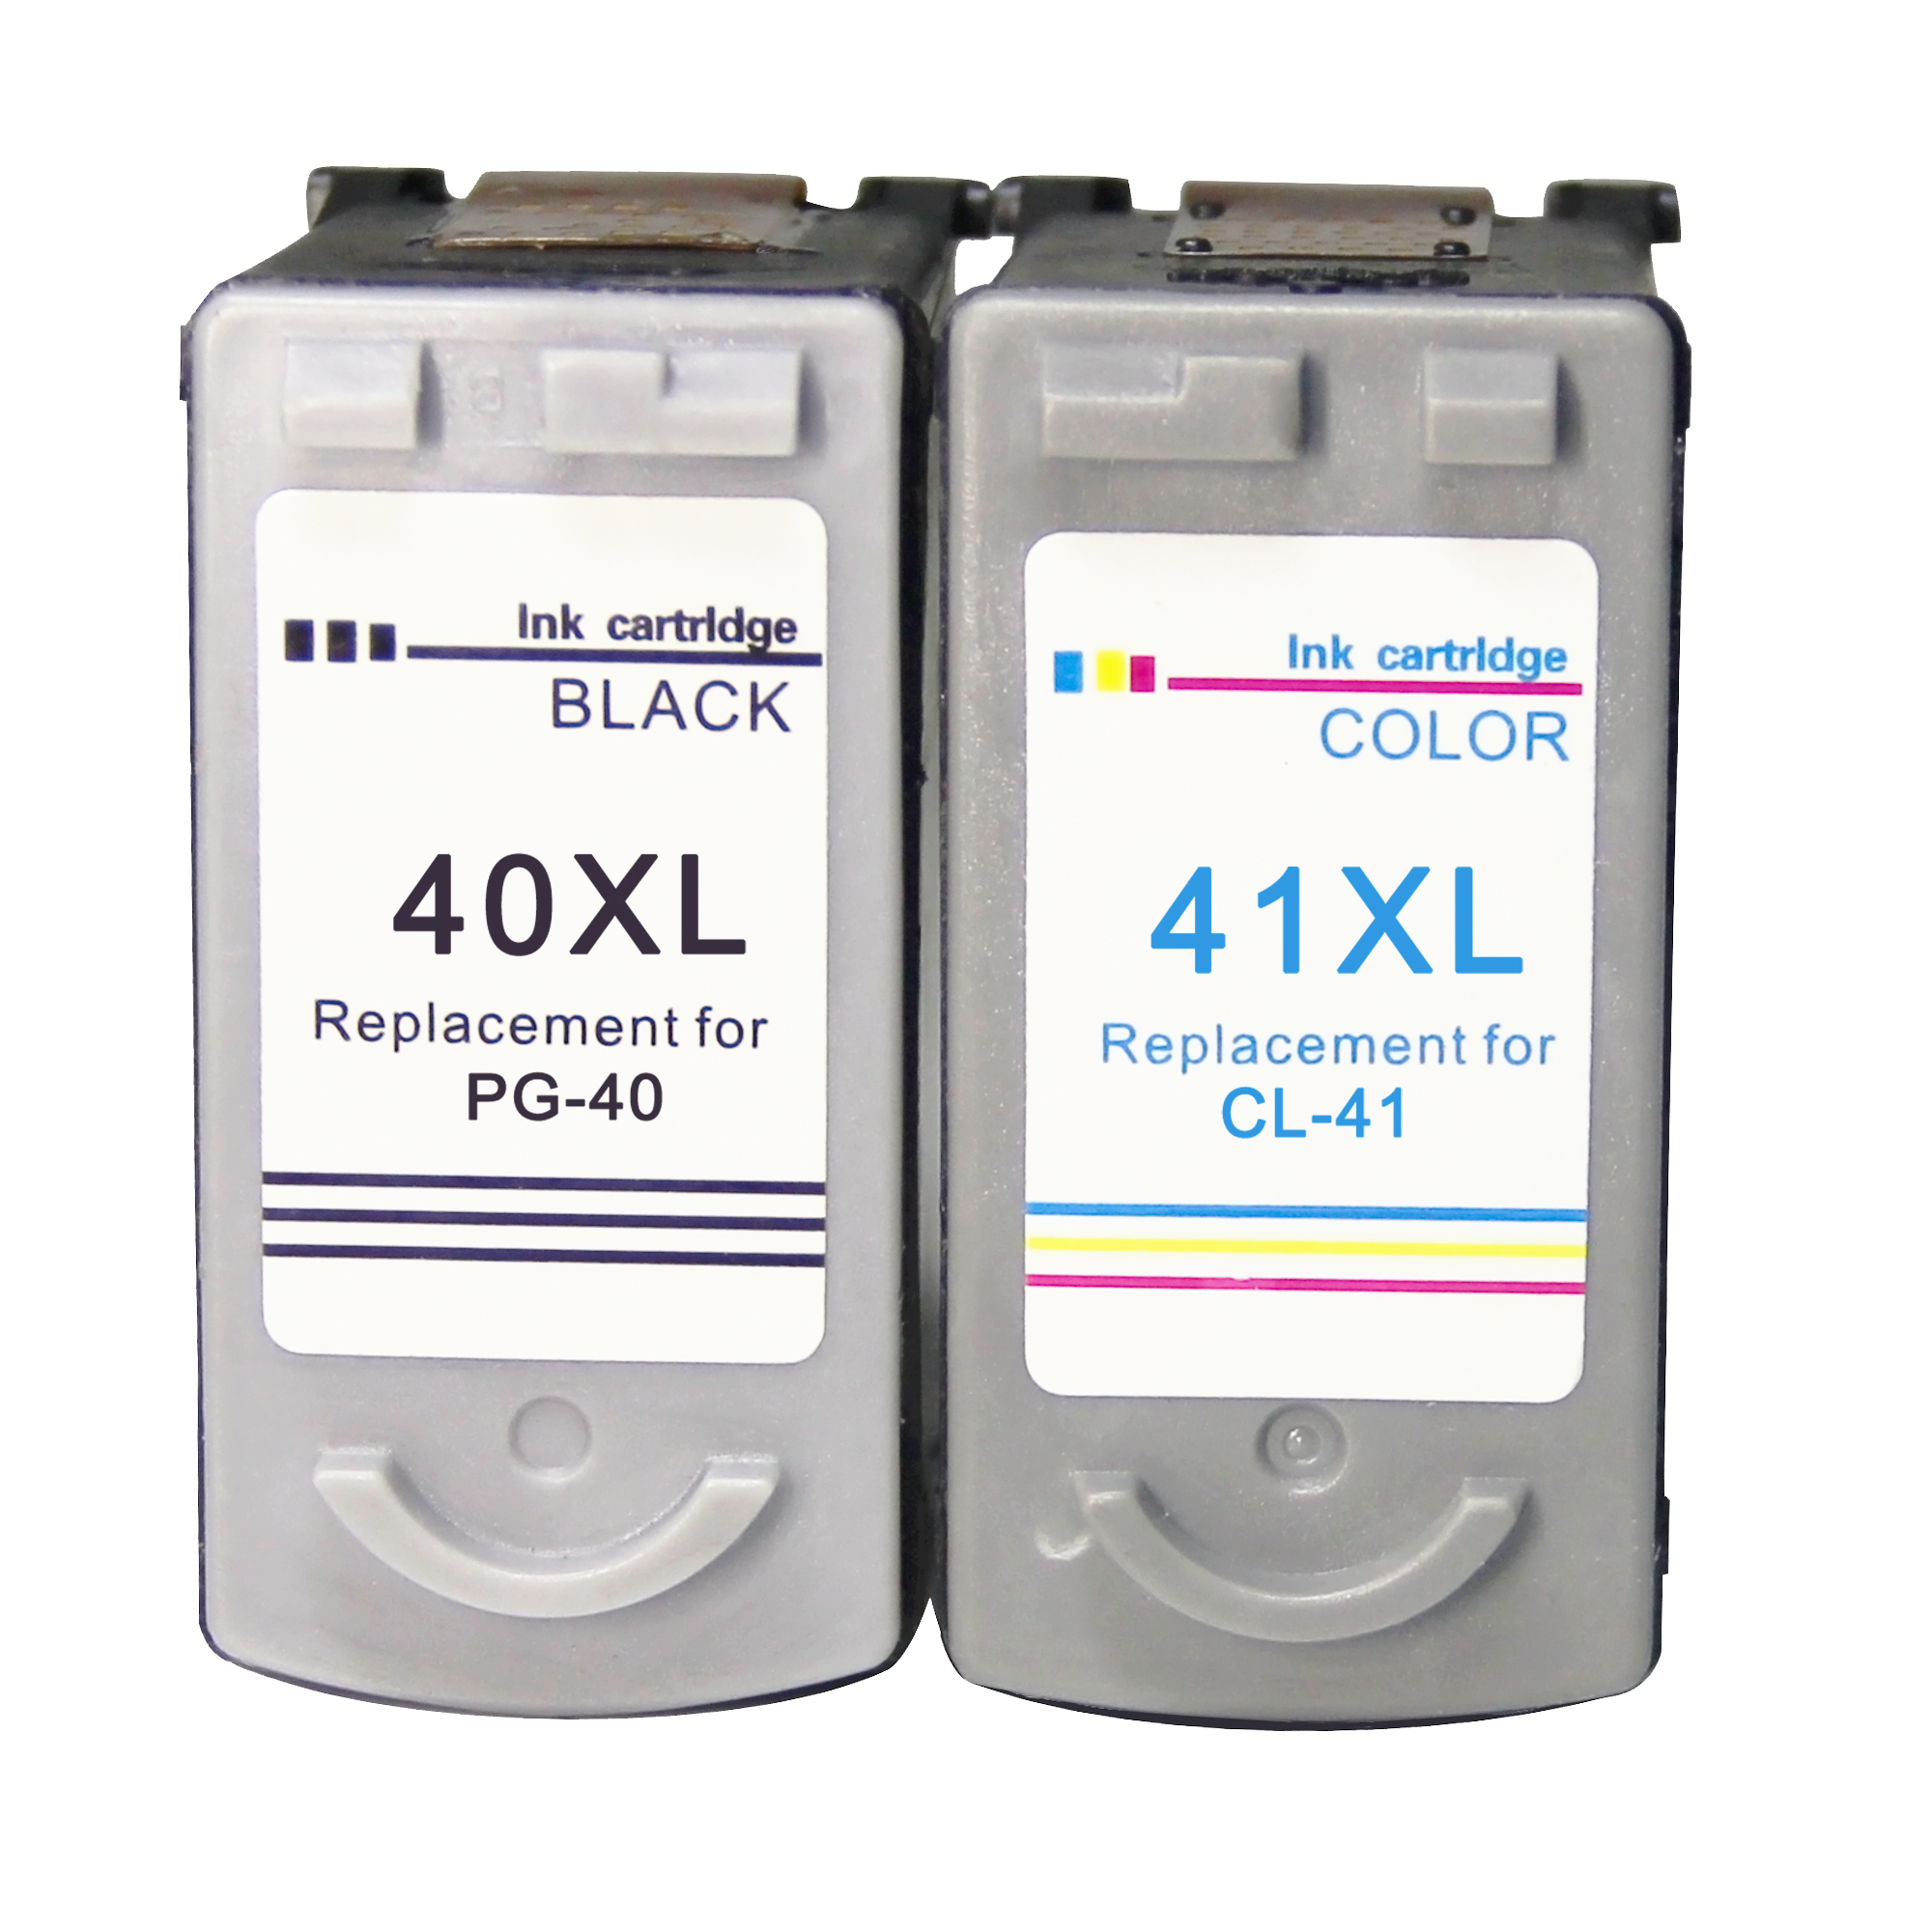 PG40 CL41 Cartucho de Tintas Replacement for Canon PG40 CL41 PG-<font><b>40</b></font> CL-41 iP1600 IP1700 IP1800 MP140 MP450 MP470 MX300 printer image